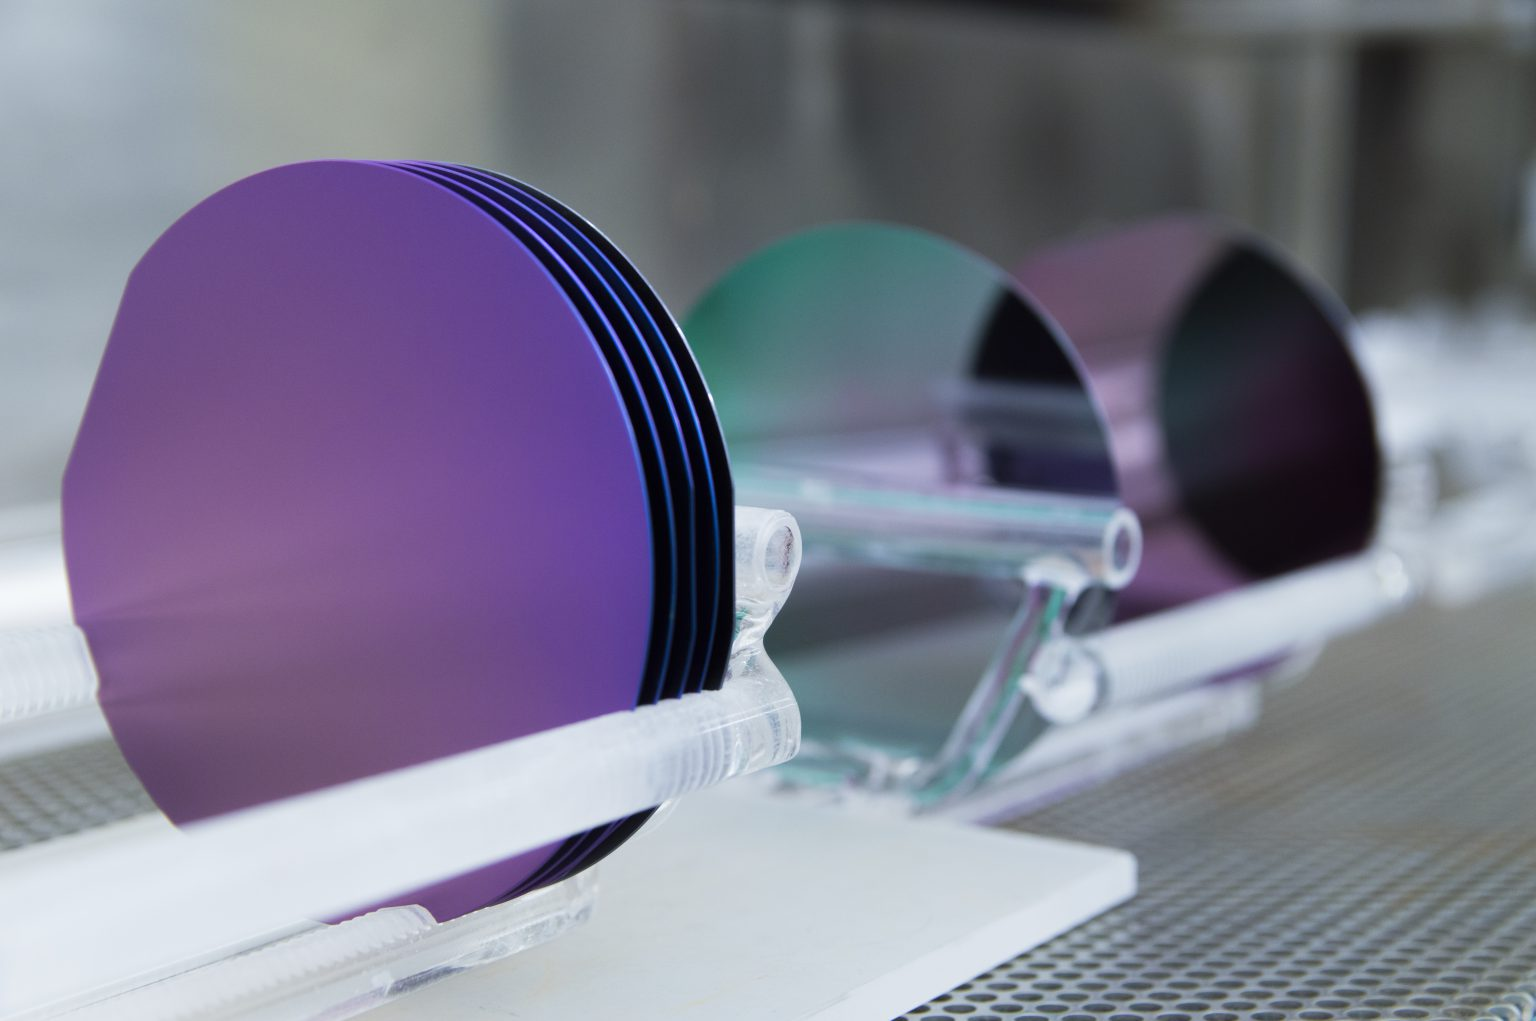 This is a set of 100 mm silicon wafers grown in a cleanroom facility.  They are sitting in quartz holders or boats after being in a silicon dioxide growth furnace.  The high heat from the furnace combined with oxygen converts the surface of the wafers to silicon dioxide.  The wafer colors are dictated by the thickness of the silicon dioxide layer and the viewing angle.  The purples and greens shown on these wafers are quite common and give the cleanroom a colorful and artistic touch.